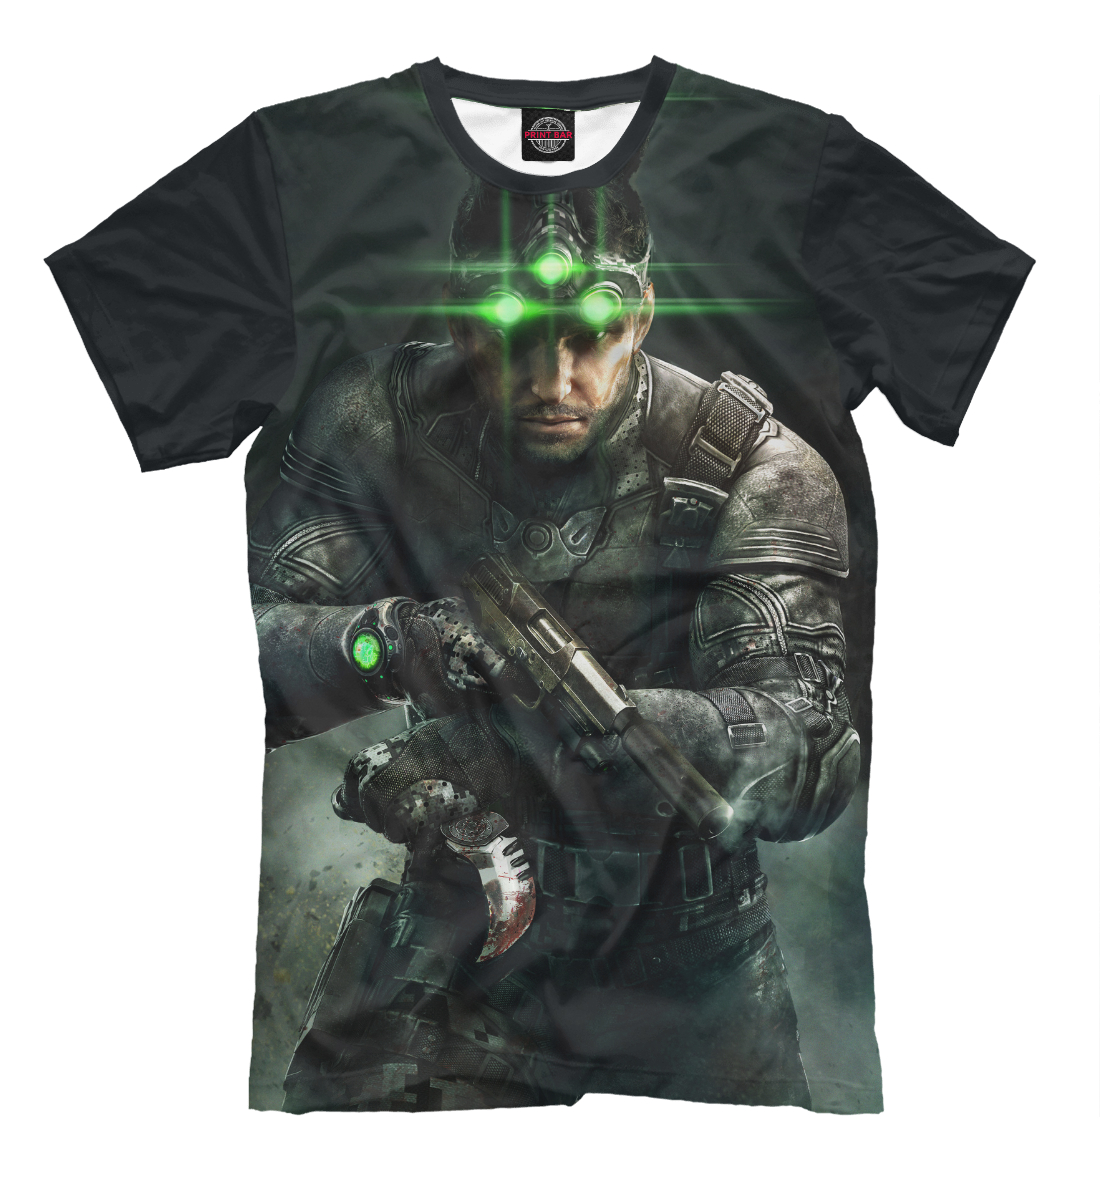 Купить Splinter Cell: Blacklist — Сэм Фишер, Printbar, Футболки, RPG-930840-fut-2